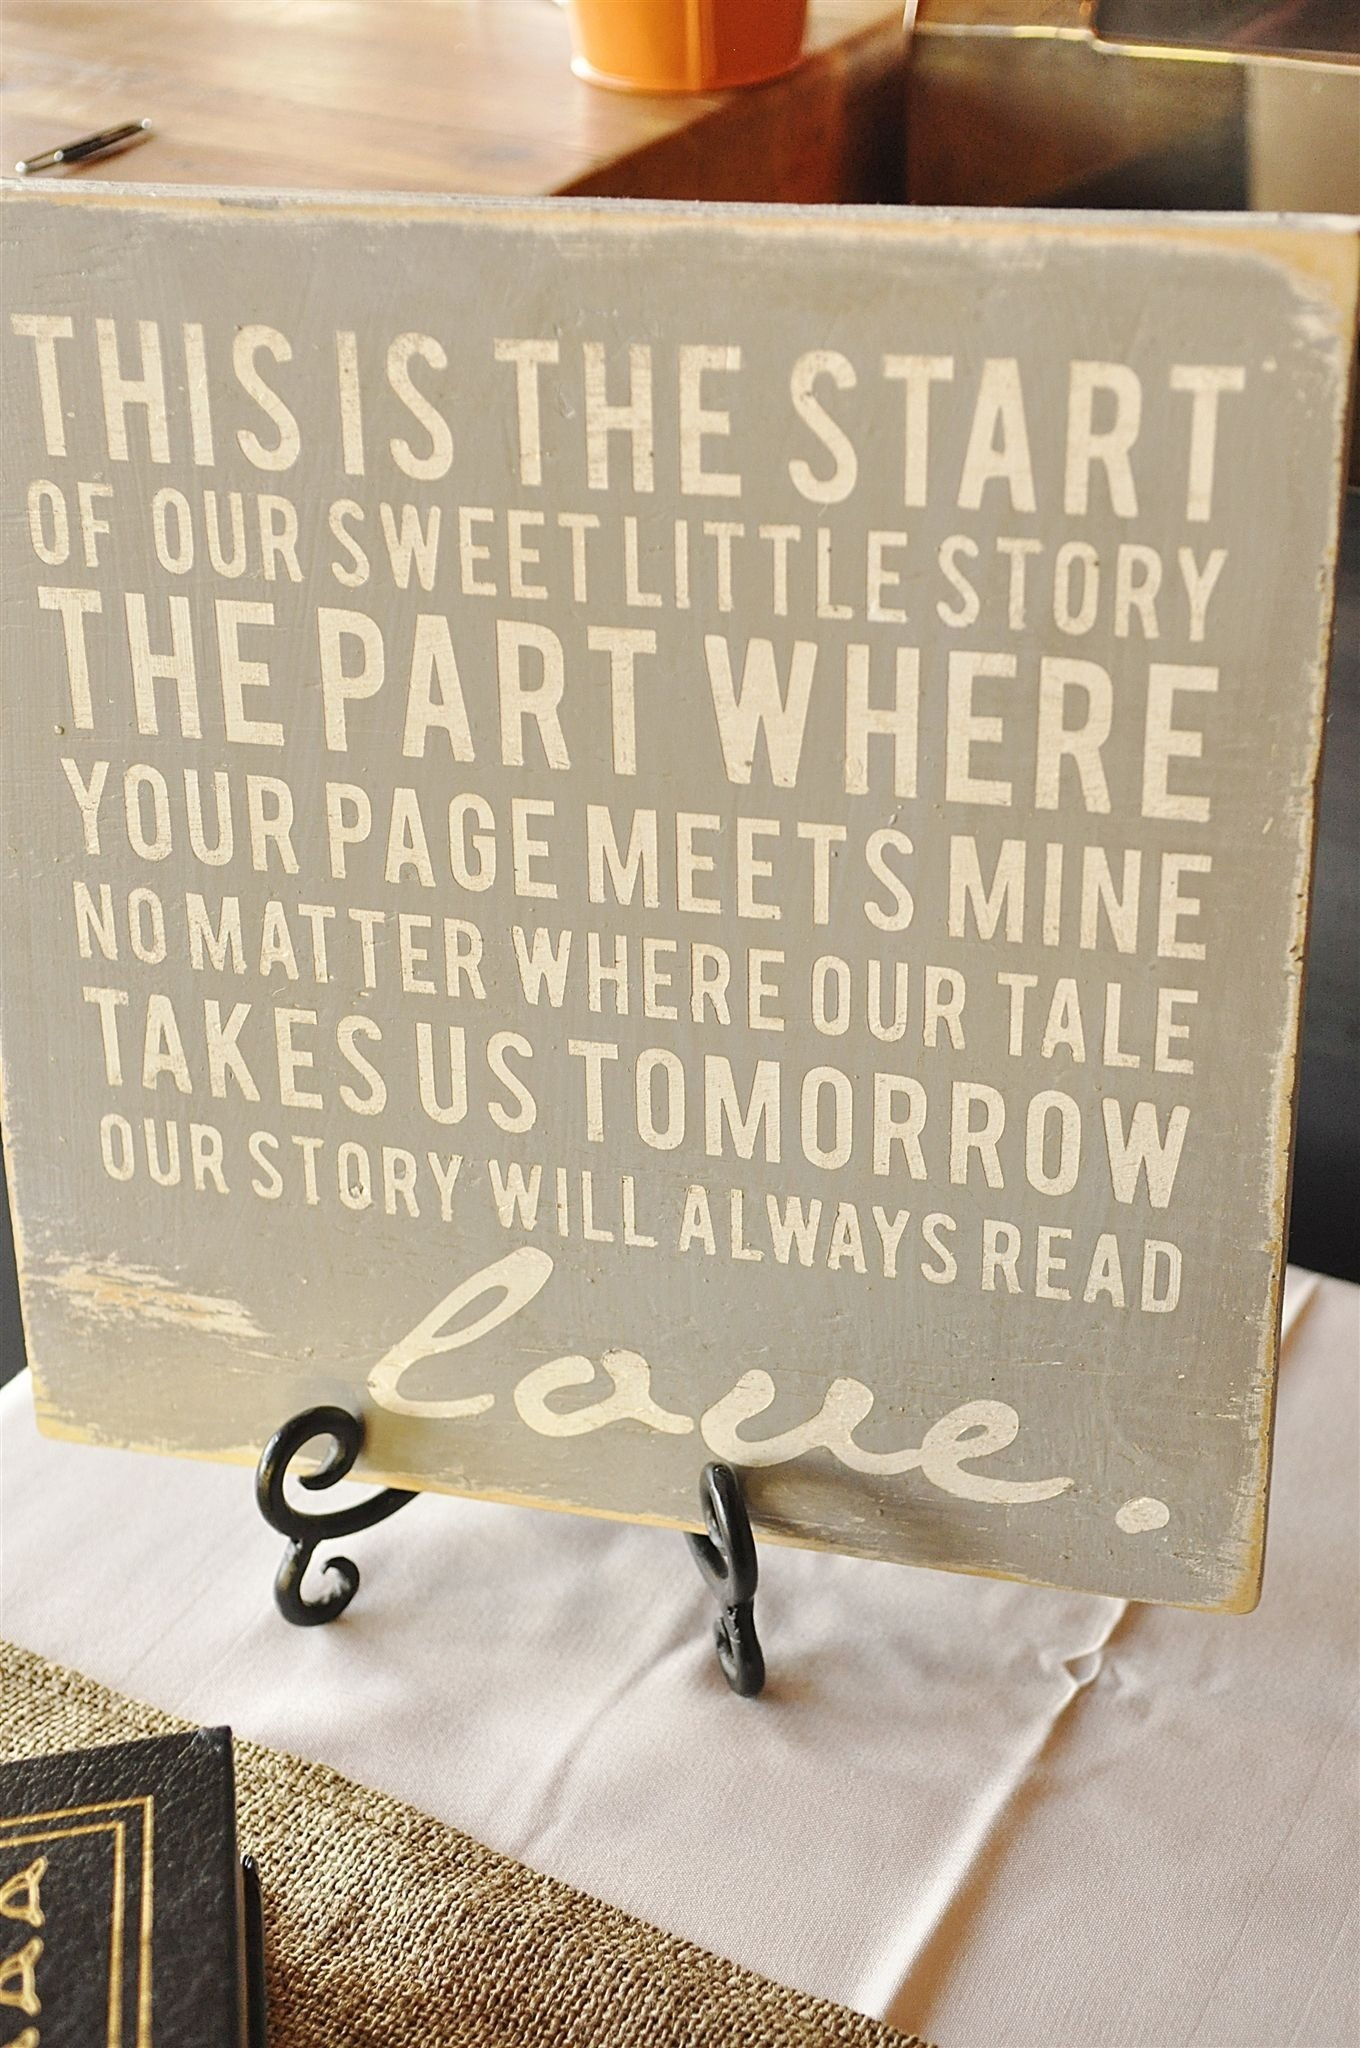 10 Best Wedding Rehearsal Dinner Ideas Decorations wedding rehearsal dinnerliterary love theme word art literature 2020